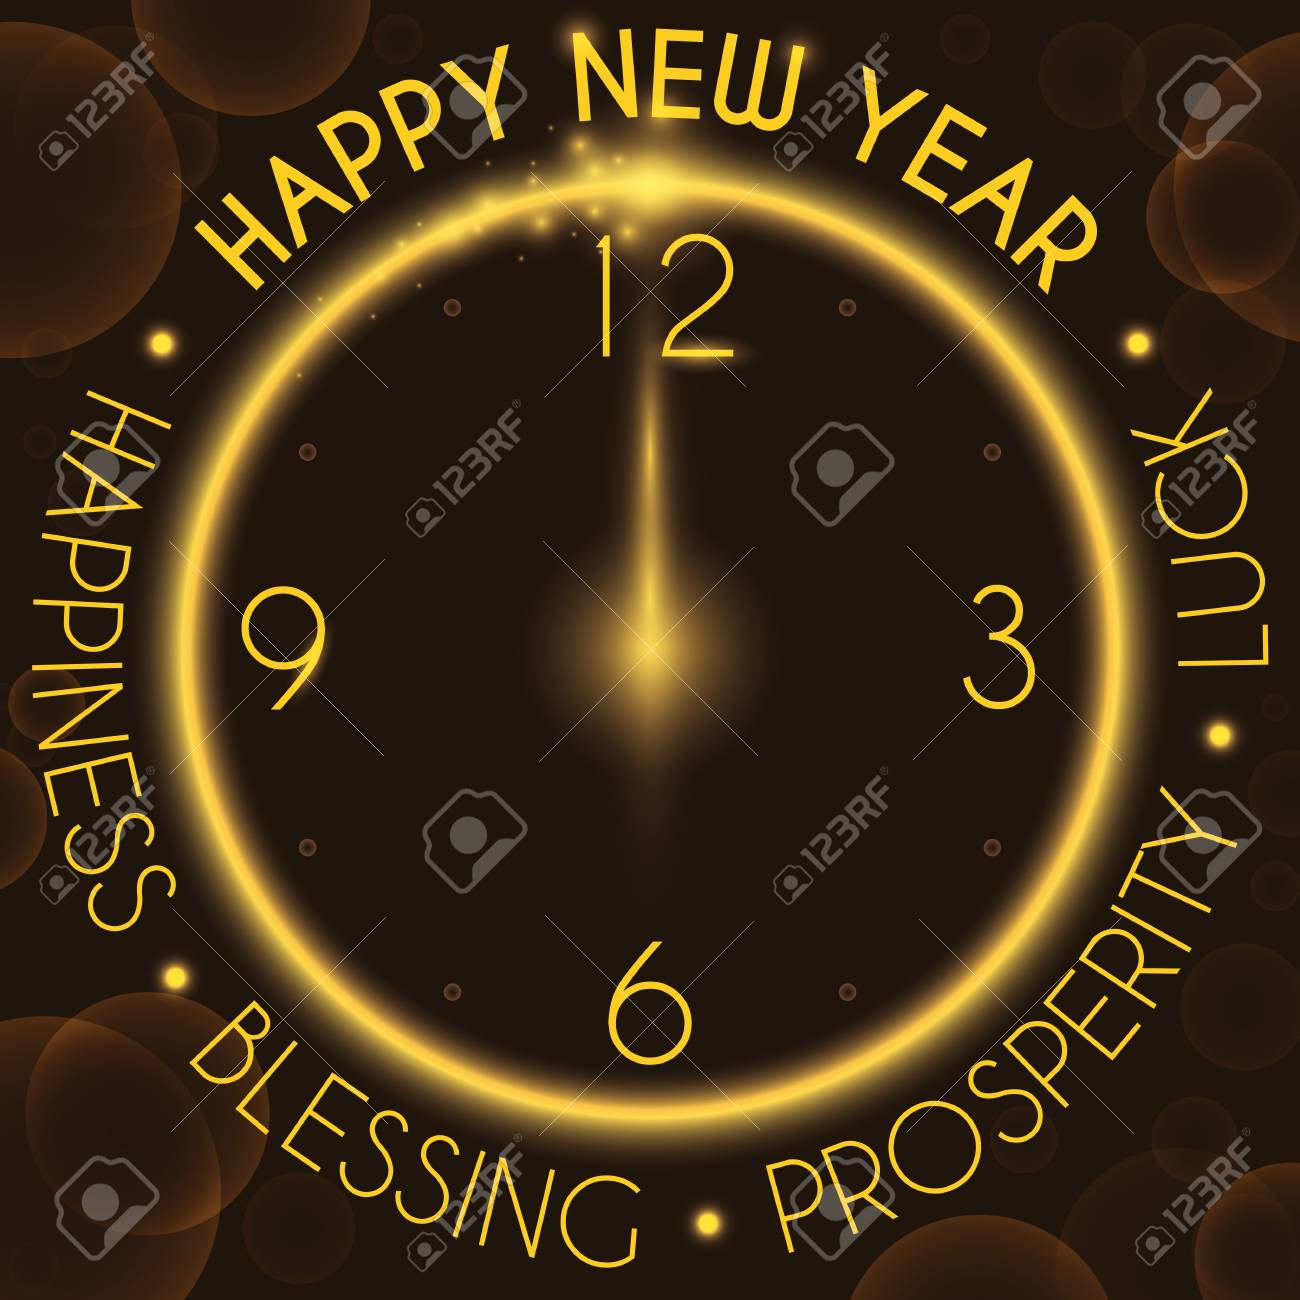 Poster With Glowing Circle Like A Clock With Greeting Message